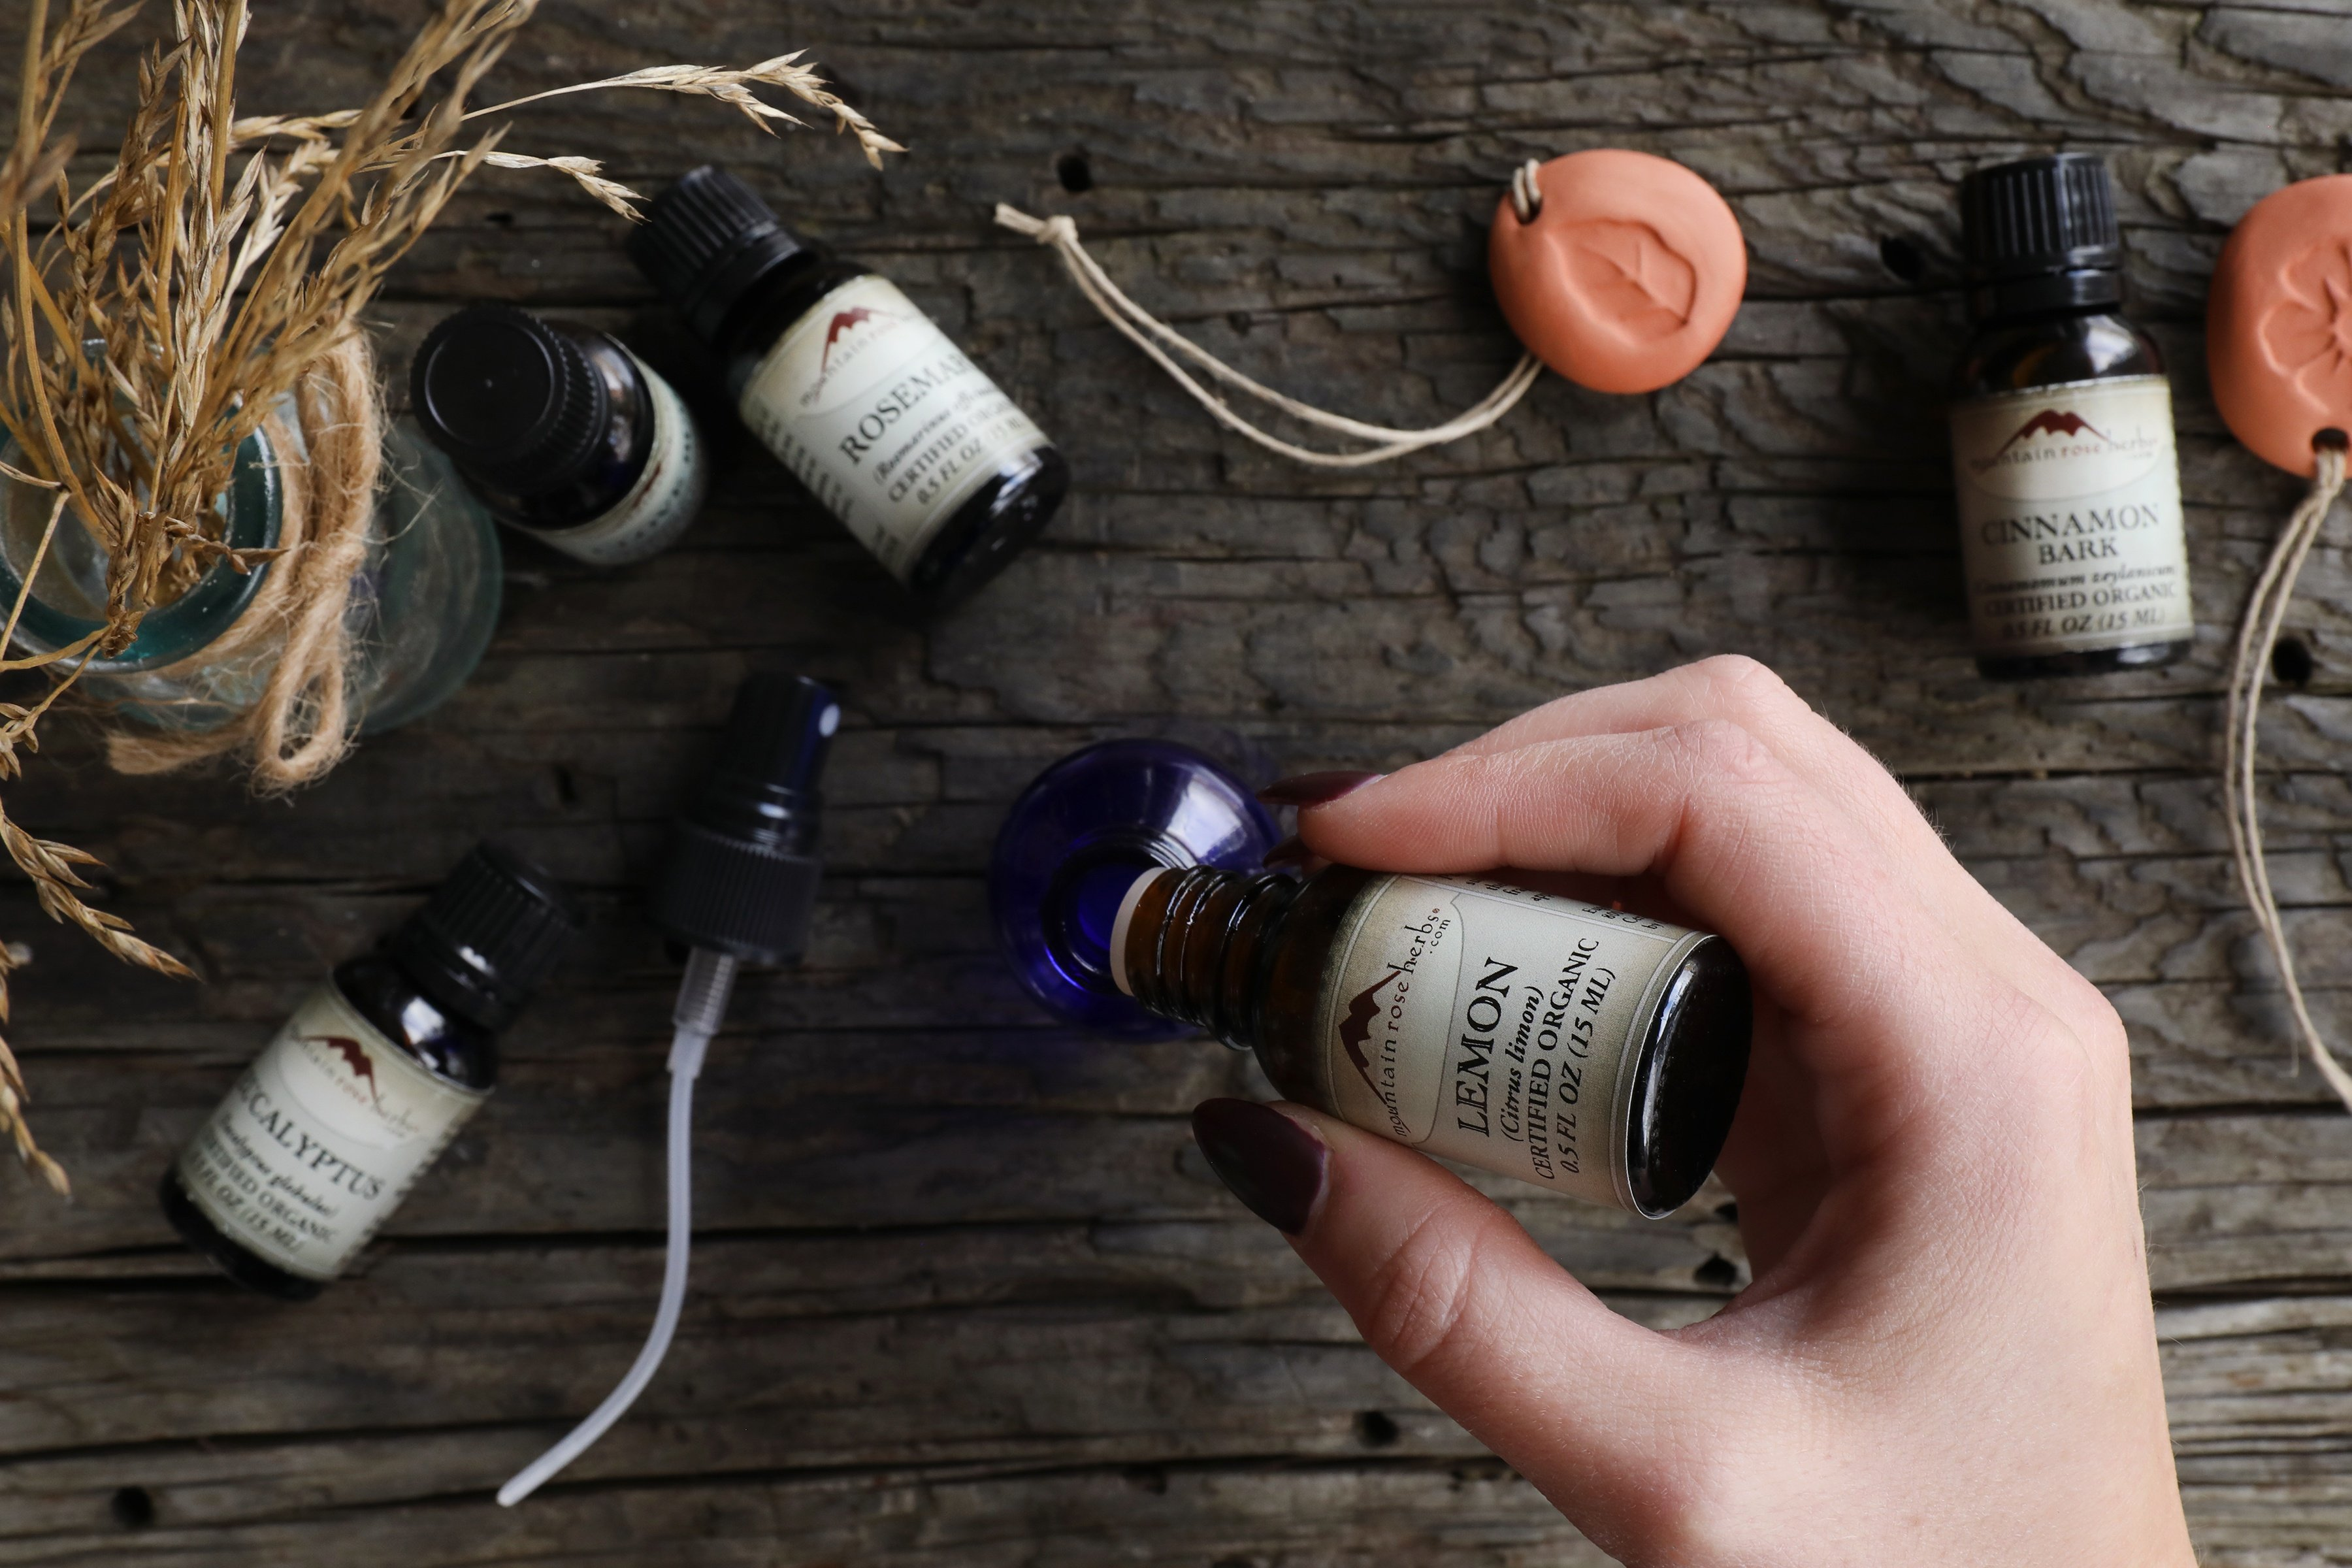 Hand pouring essential oil into cobalt glass bottle with other essential oils displayed on rustic wood.